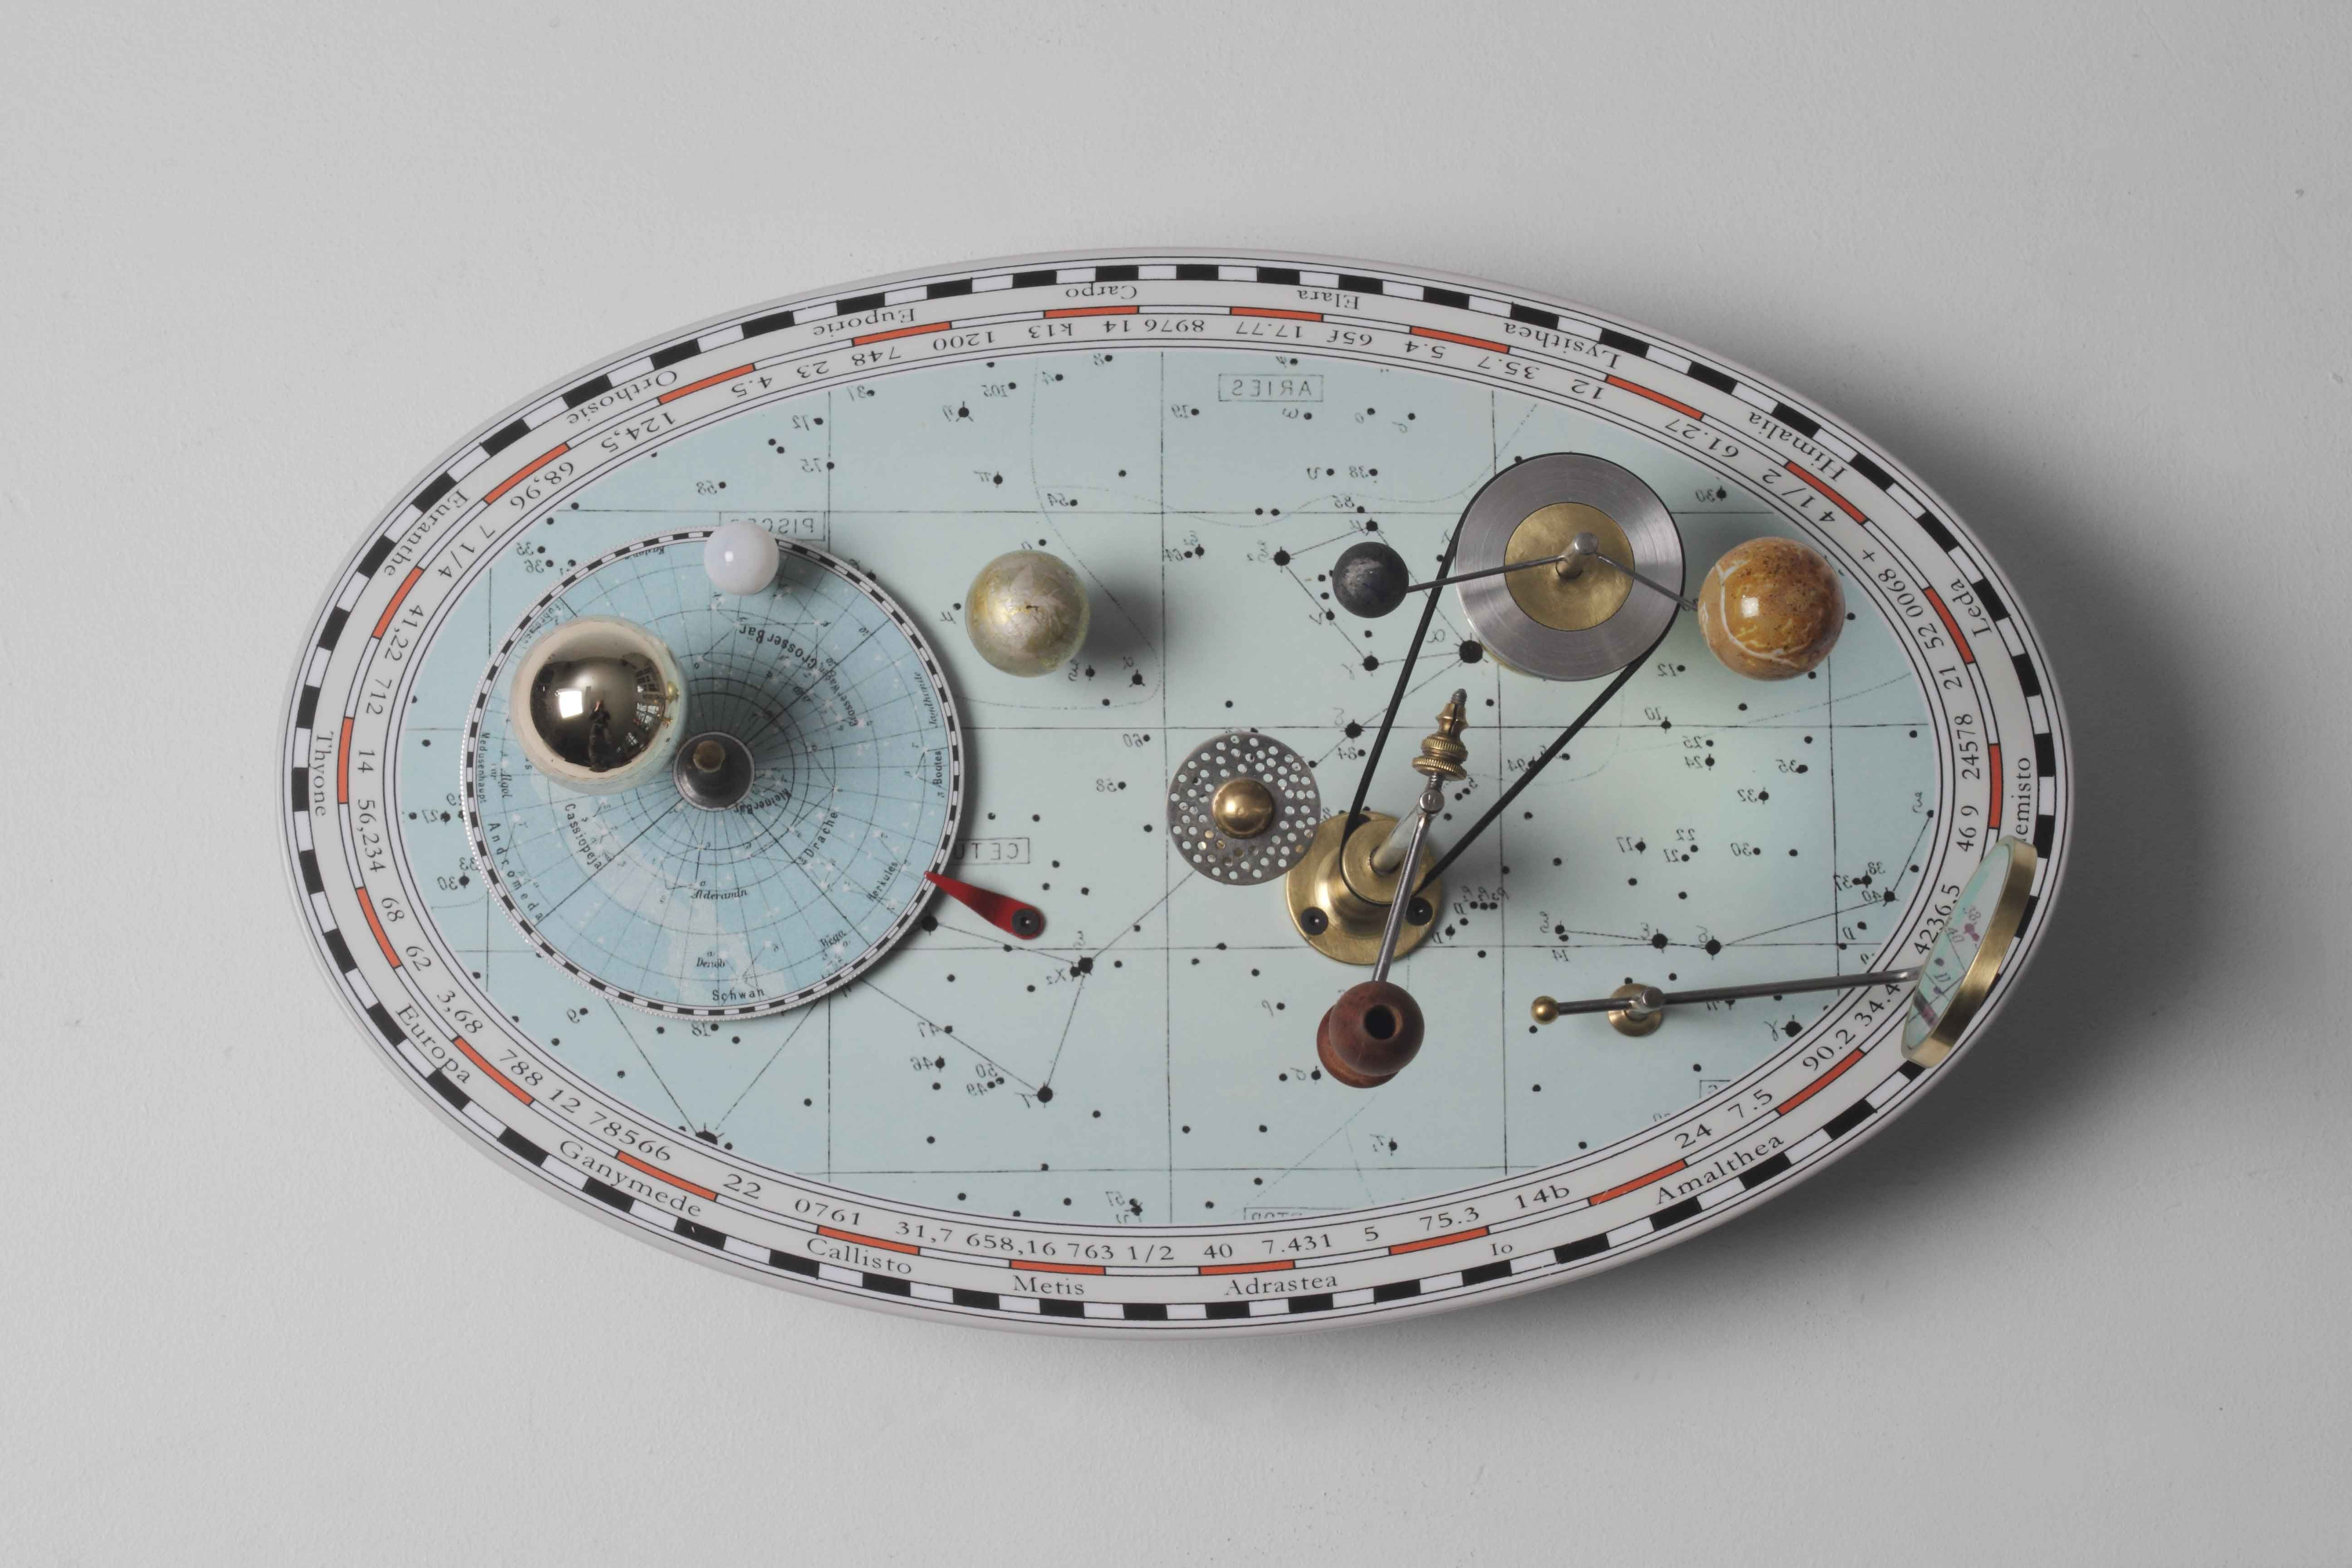 This is The Orrery by Steffen Dam who's work we are showing at #COLLECT15  @CraftsCouncilUK #glass #artist #gallery #exhibition